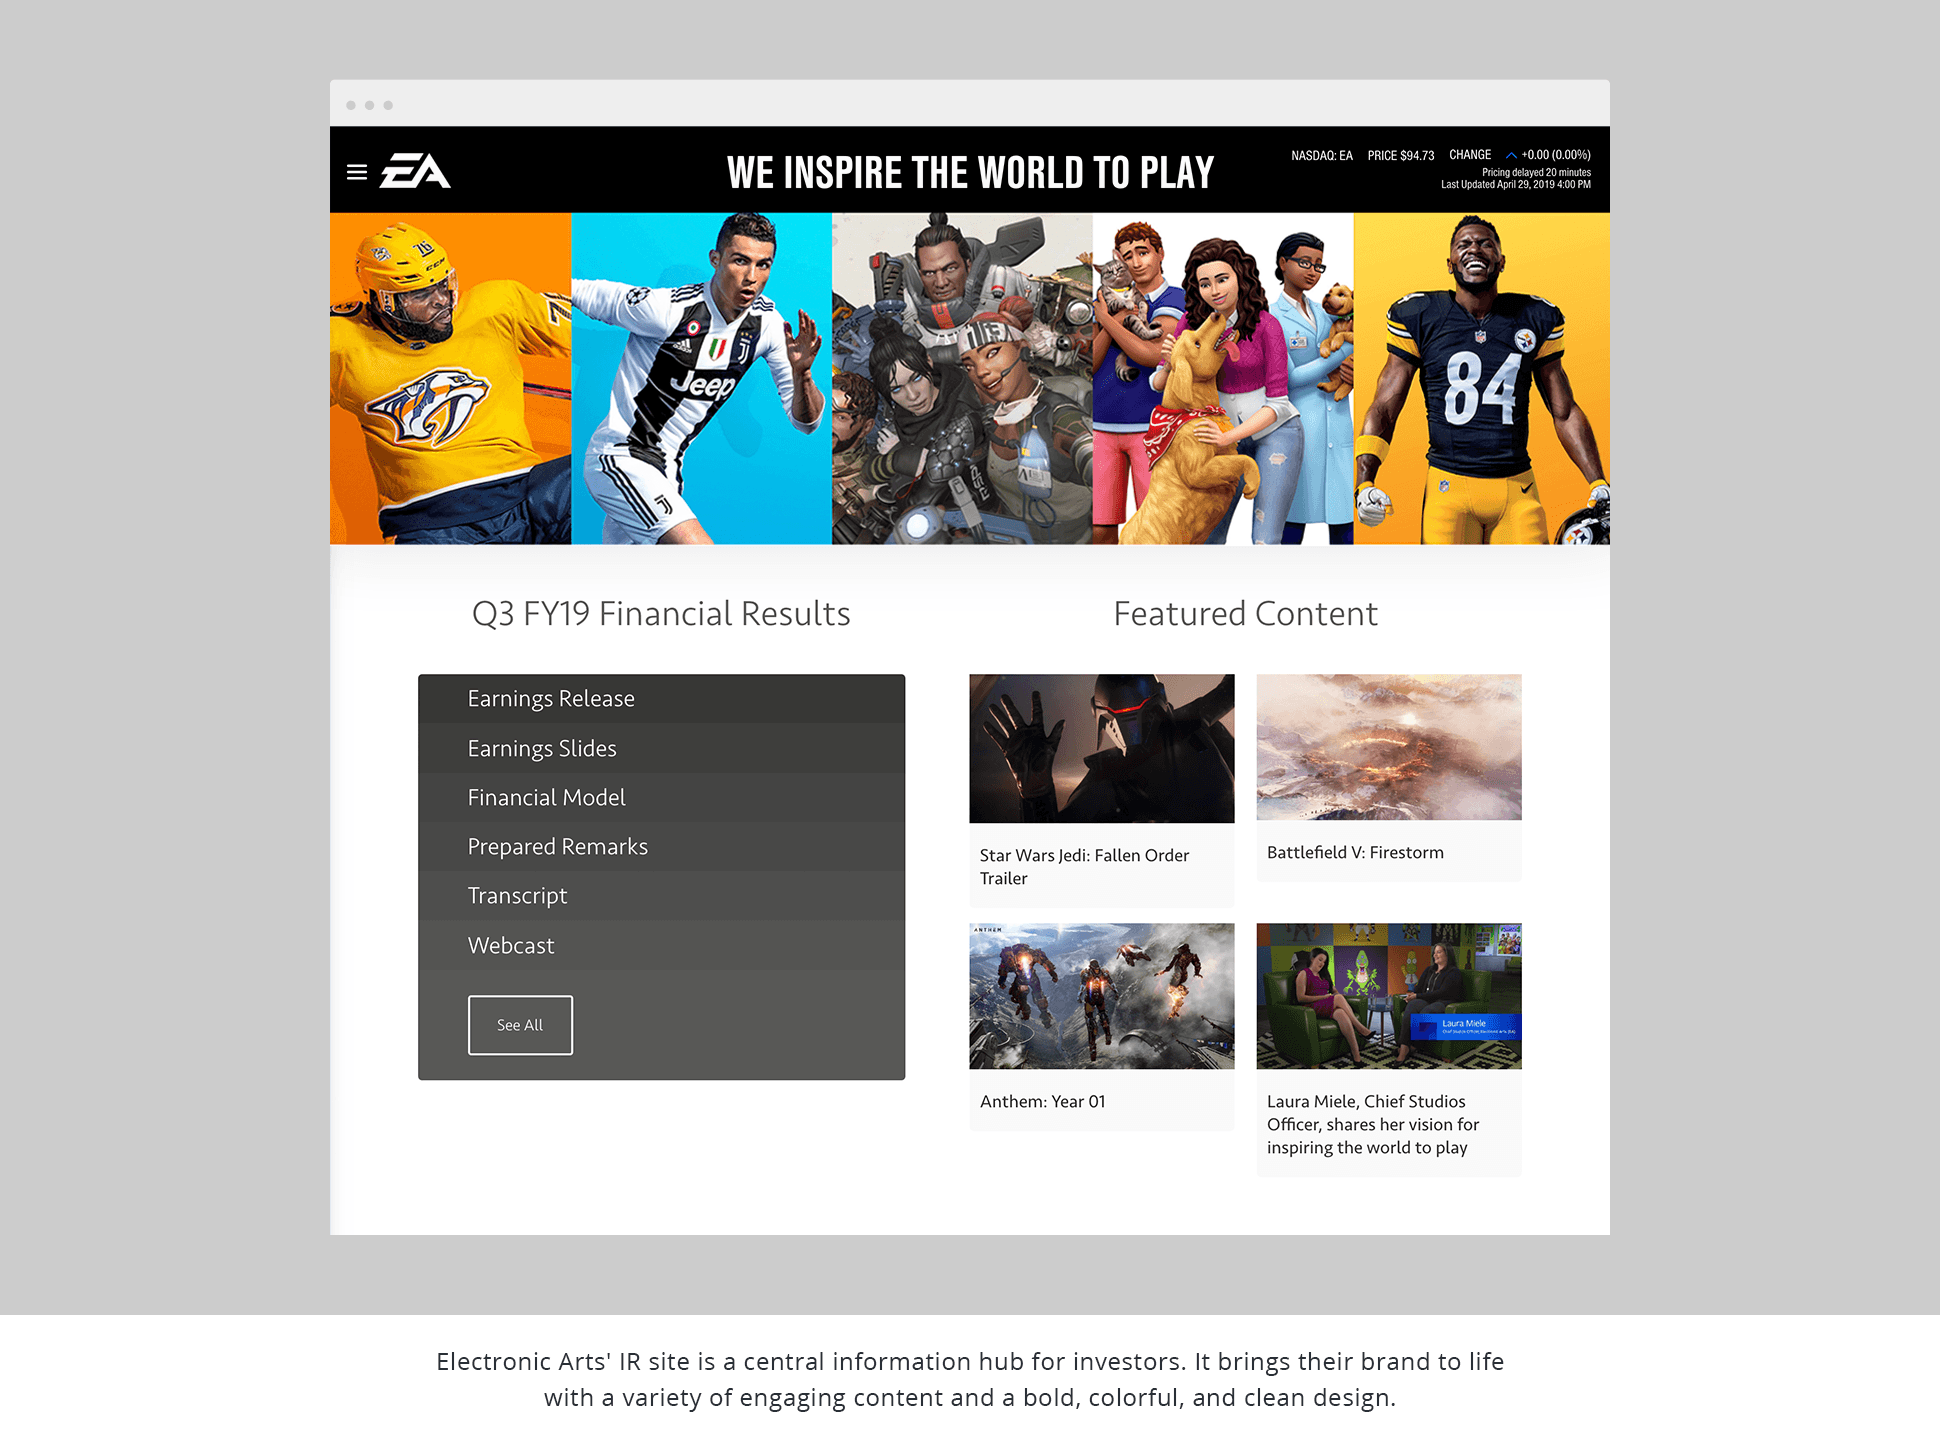 inset_image_ea_homepage.png